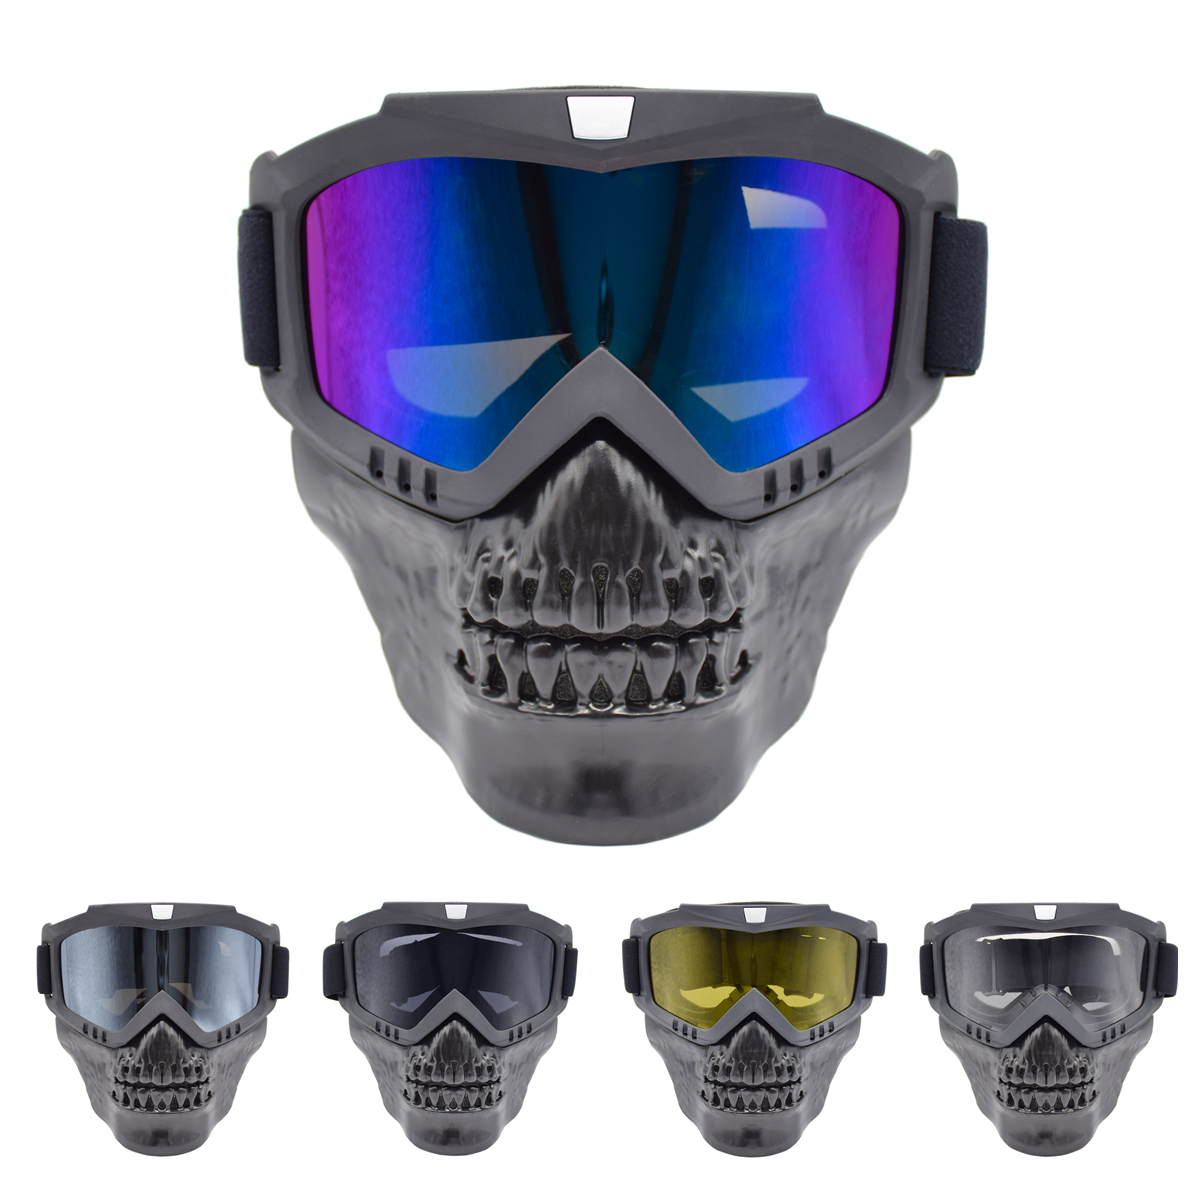 Unisex Skiing Goggles Modular Mask Detachable Mouth Filter Men Women Ski Snowmobile Snowboard Goggles Snow Winter Ski Glasses